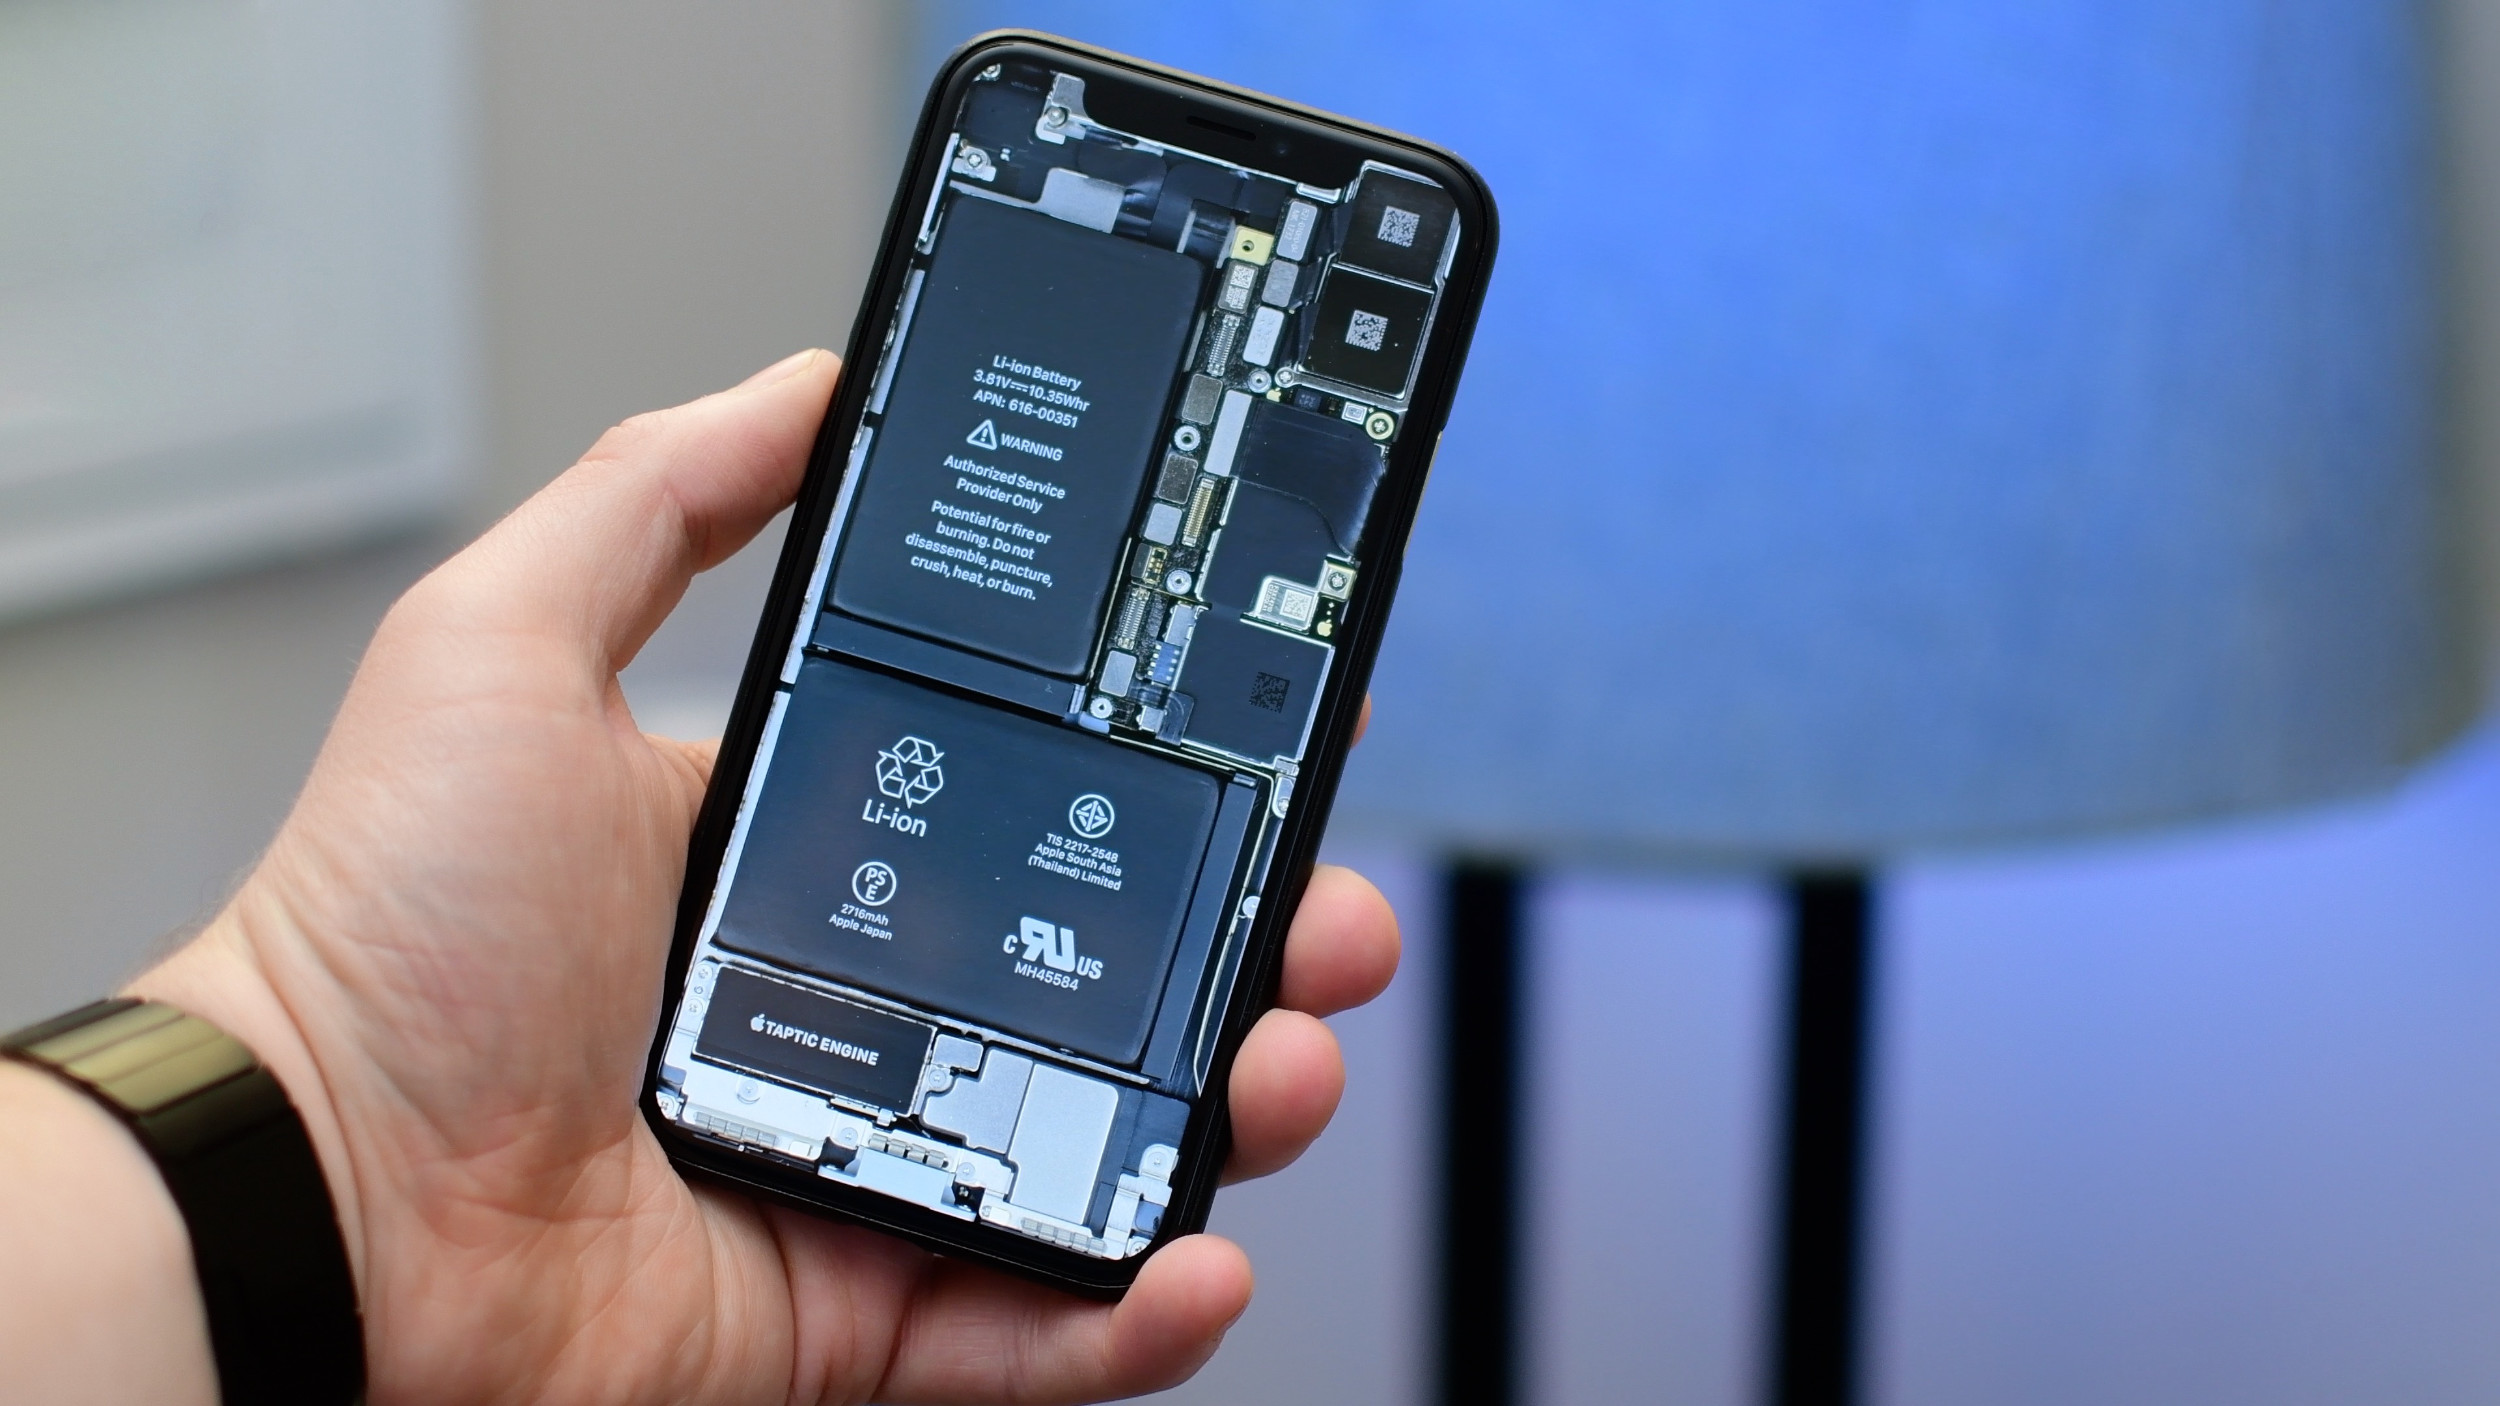 Iphone X Motherboard Wallpaper Iphone X Internals Wallpaper